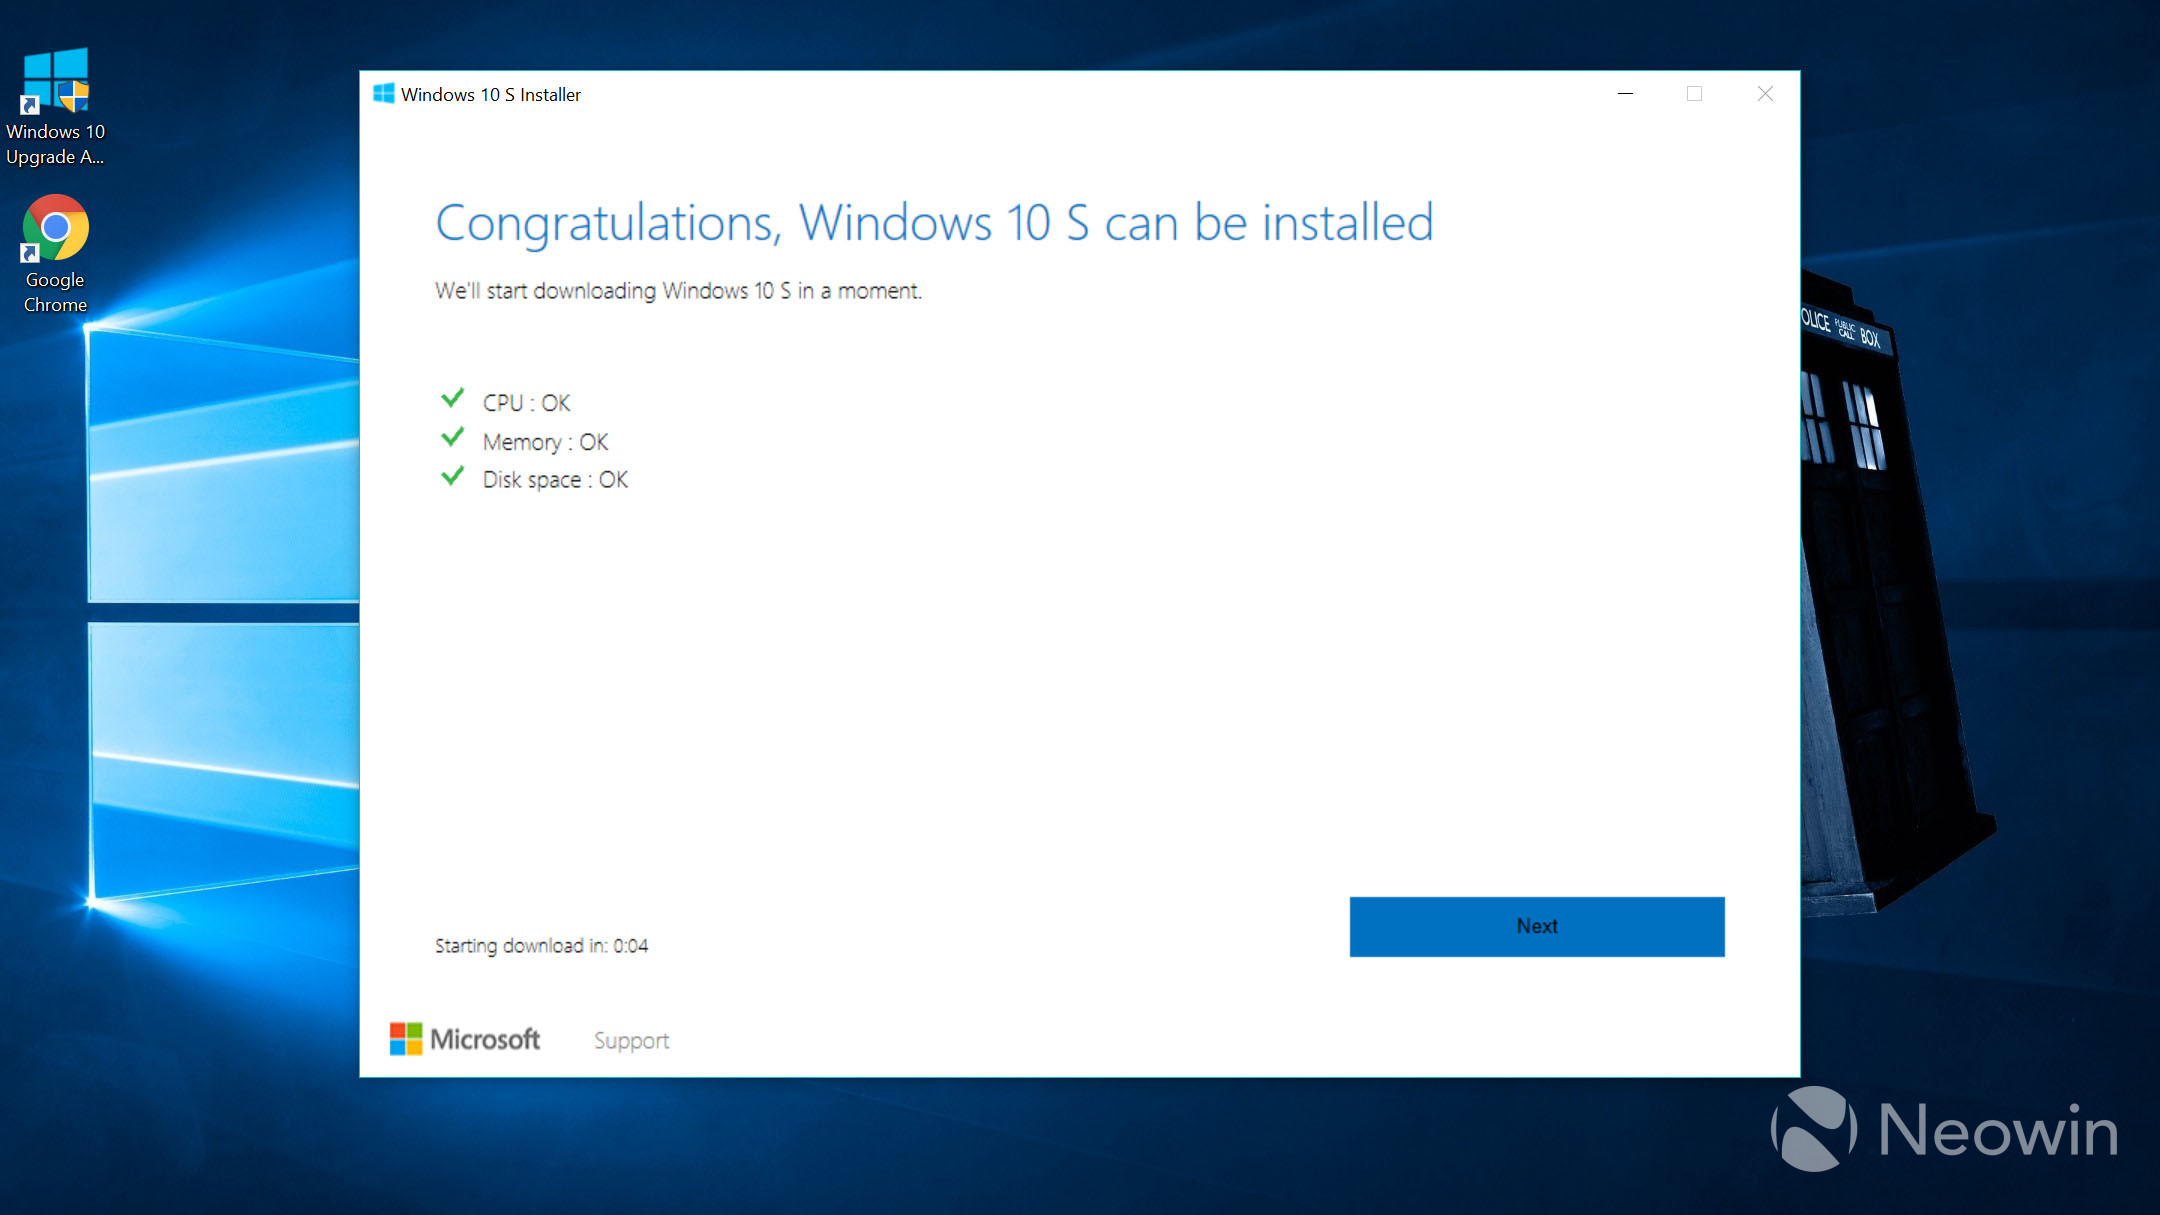 Now anyone can install Windows 10 S on their PC - Neowin